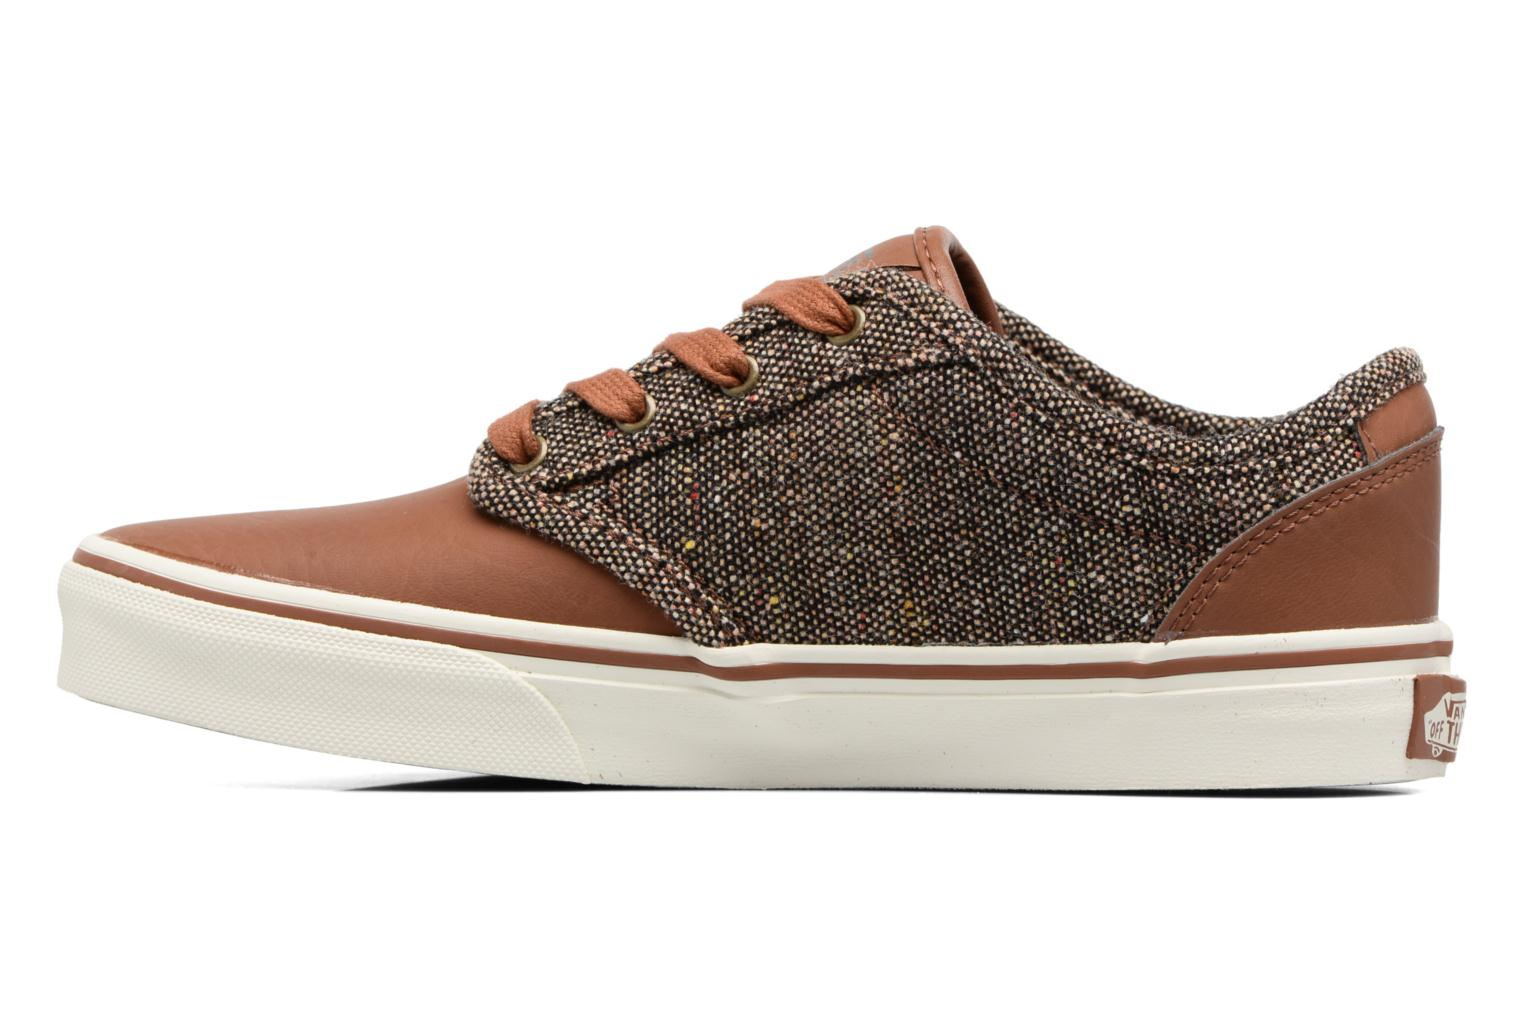 Marshmallow Shell Tweed Deluxe Atwood Tortoise Vans qwnXHa4Sq